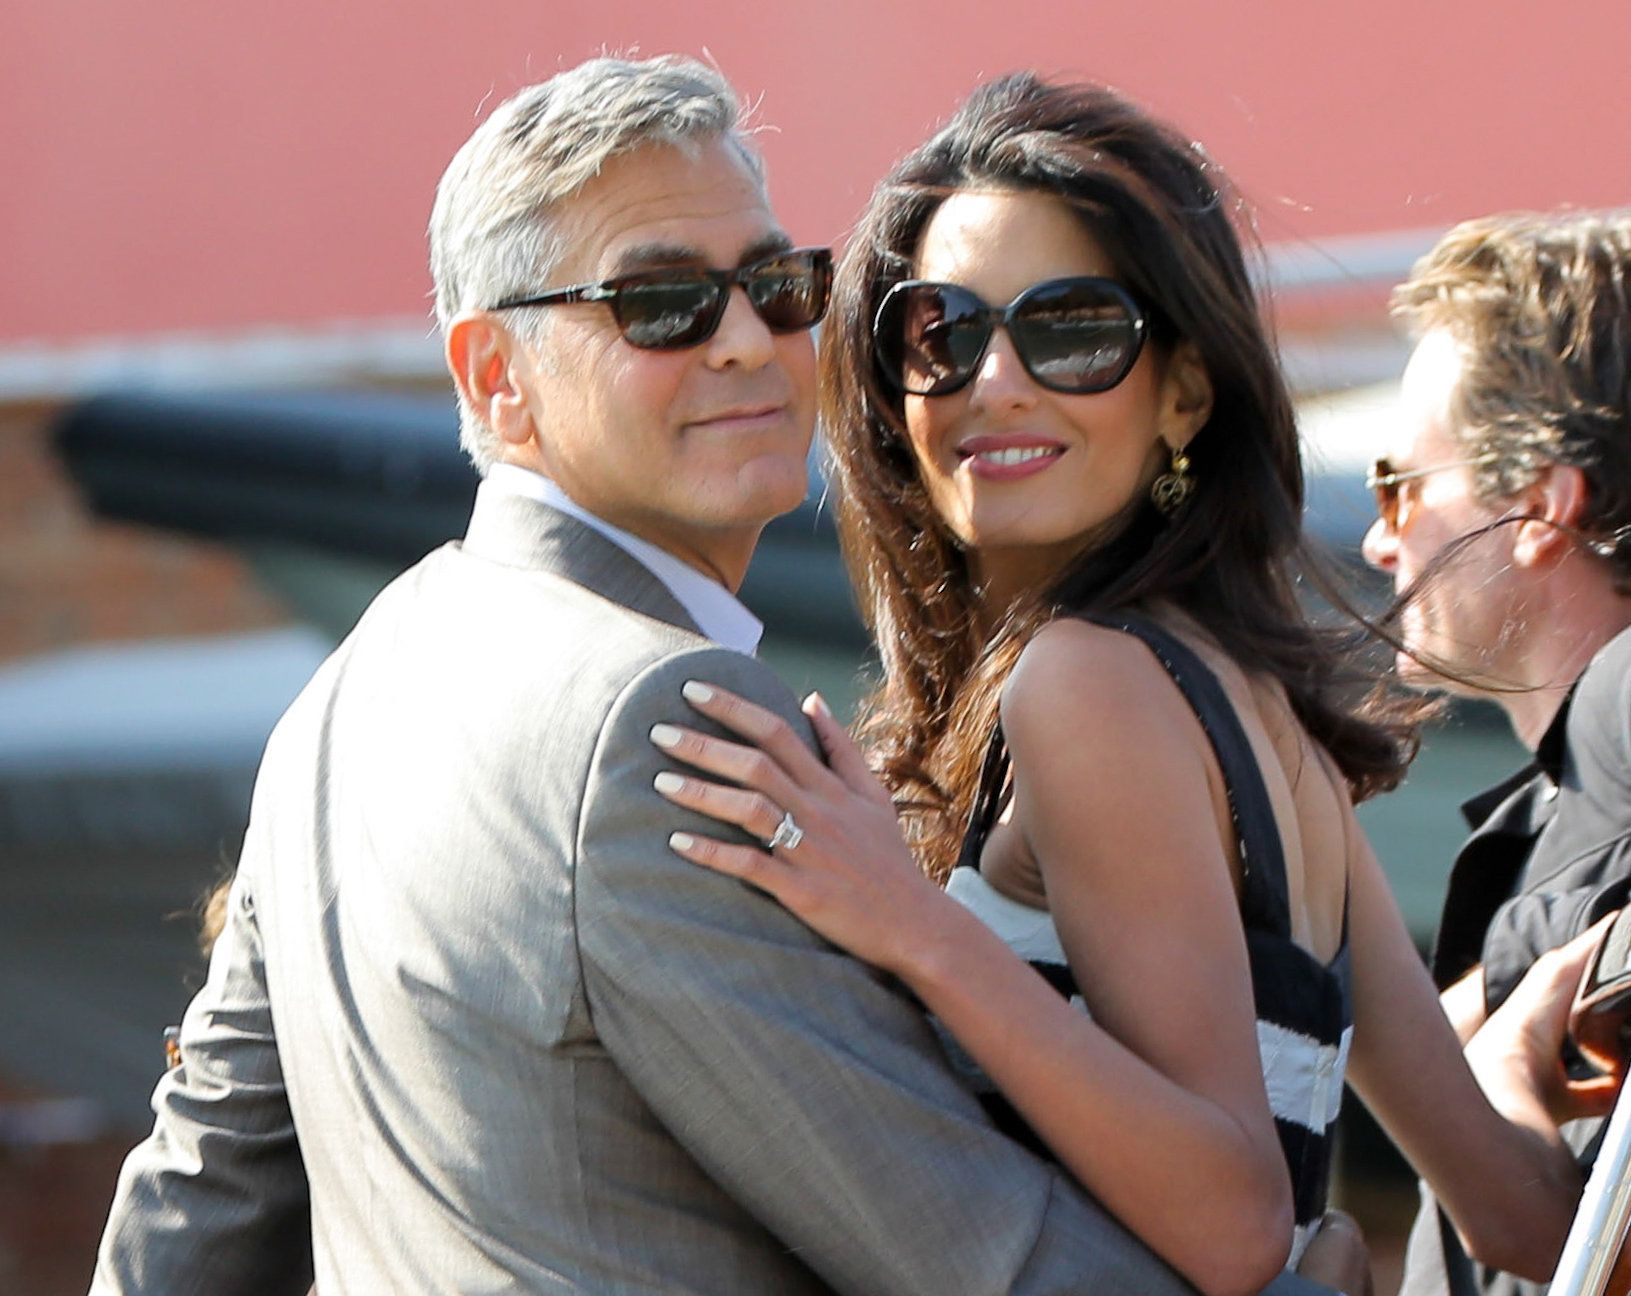 George Clooney and Amal Alamuddin in Venice ahead of their wedding (INFdaily.com)